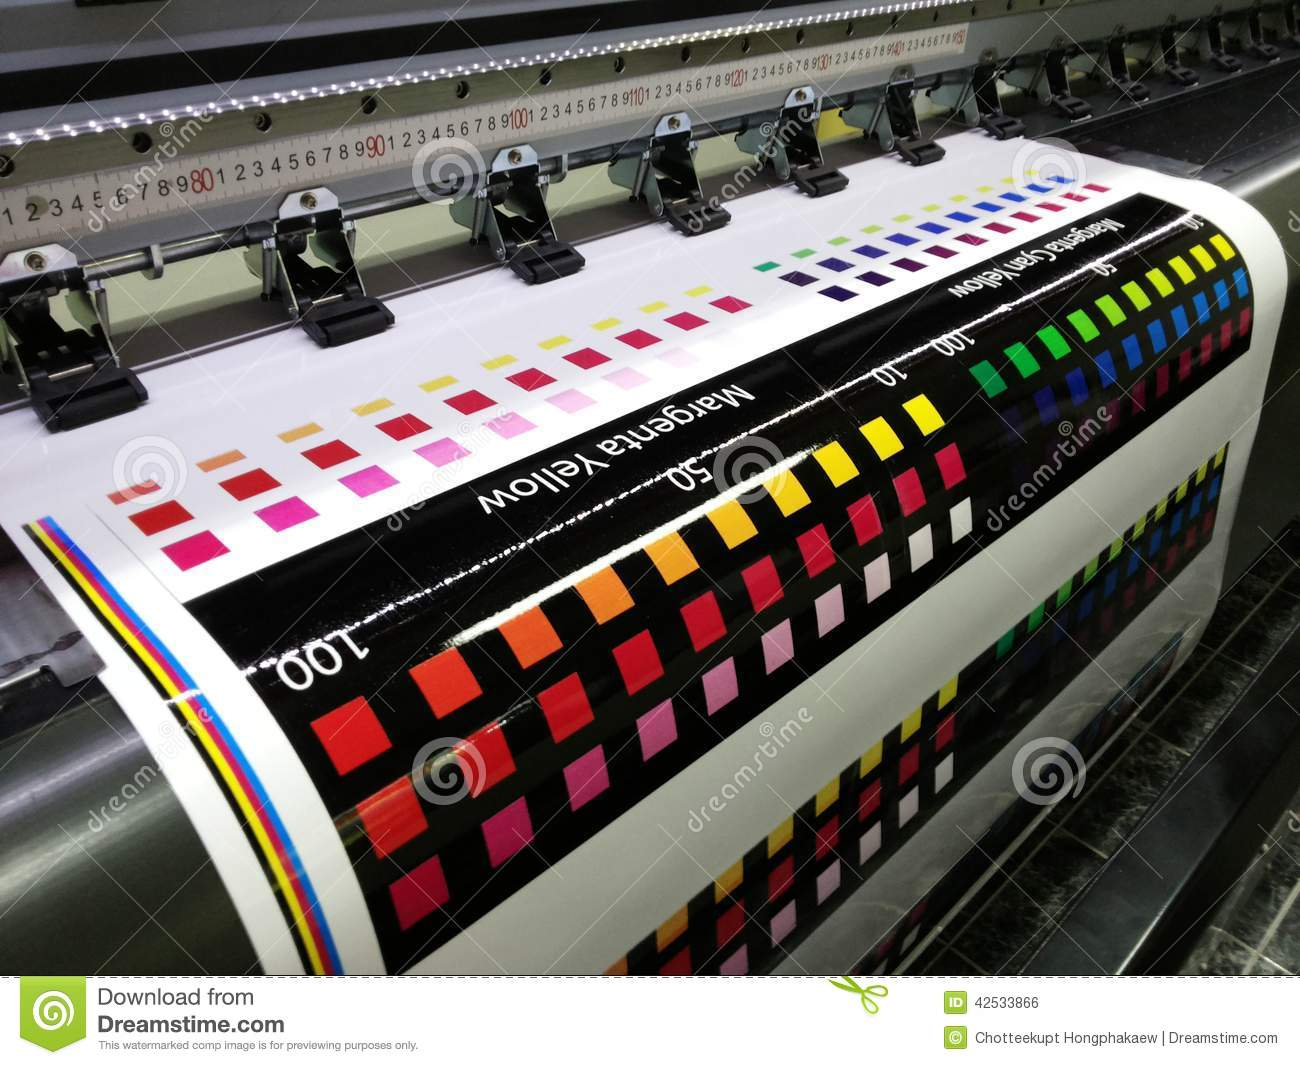 Color printing test - Test Printed Color Swatch On Wide Format Digital Printer